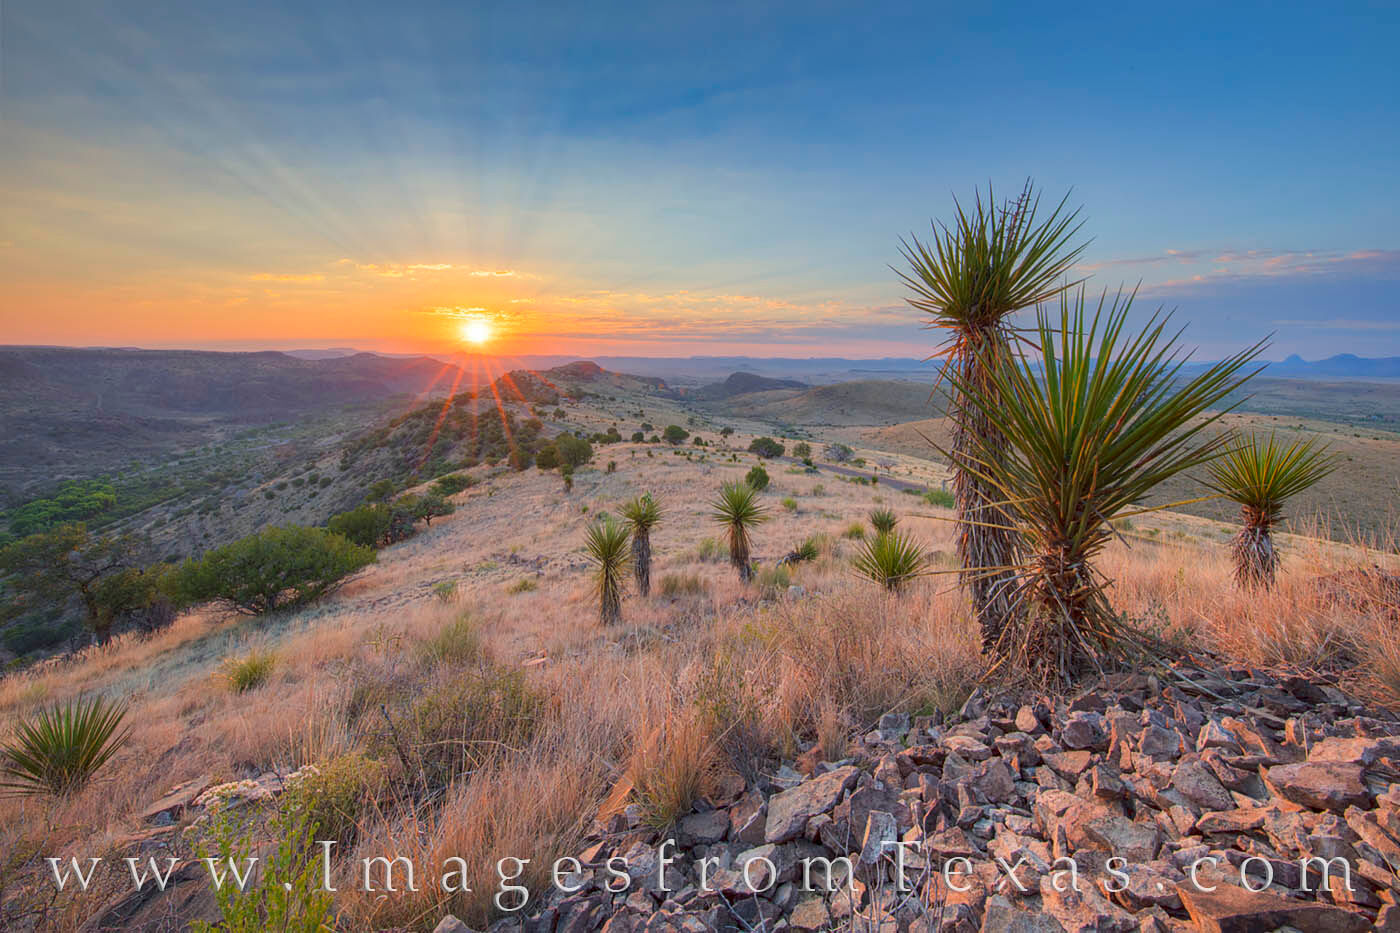 davis mountains, davis mountains state park, fort davis, skyline drive trail, texas state parks, sunrise, texas sunrise, texas hikes, texas landscapes, photo